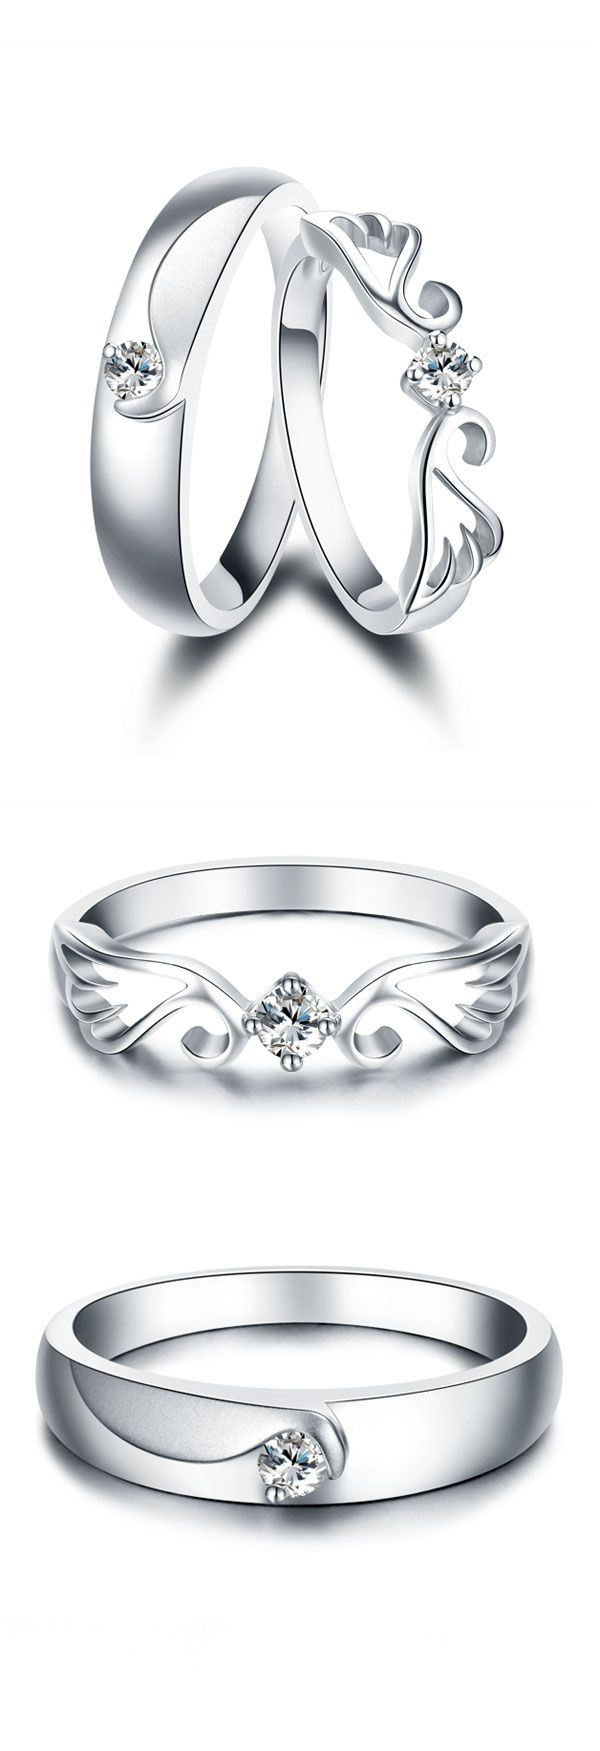 Wing + Crown Promise Rings For Couples